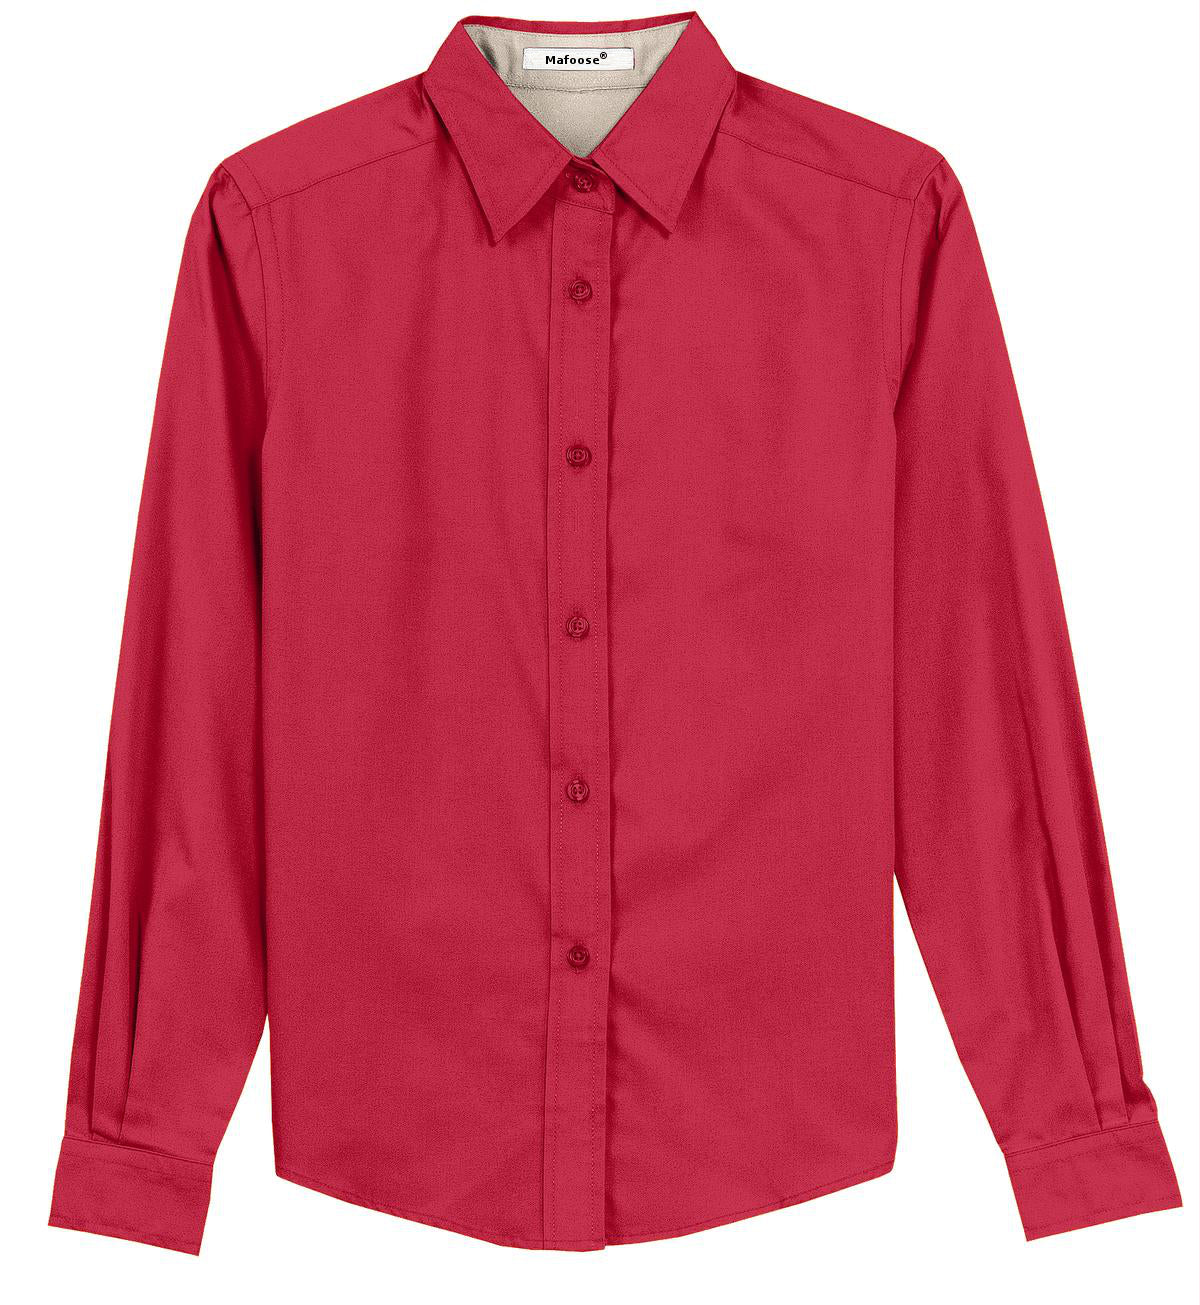 Mafoose Women's Long Sleeve Easy Care Shirt Red/Light Stone-Front